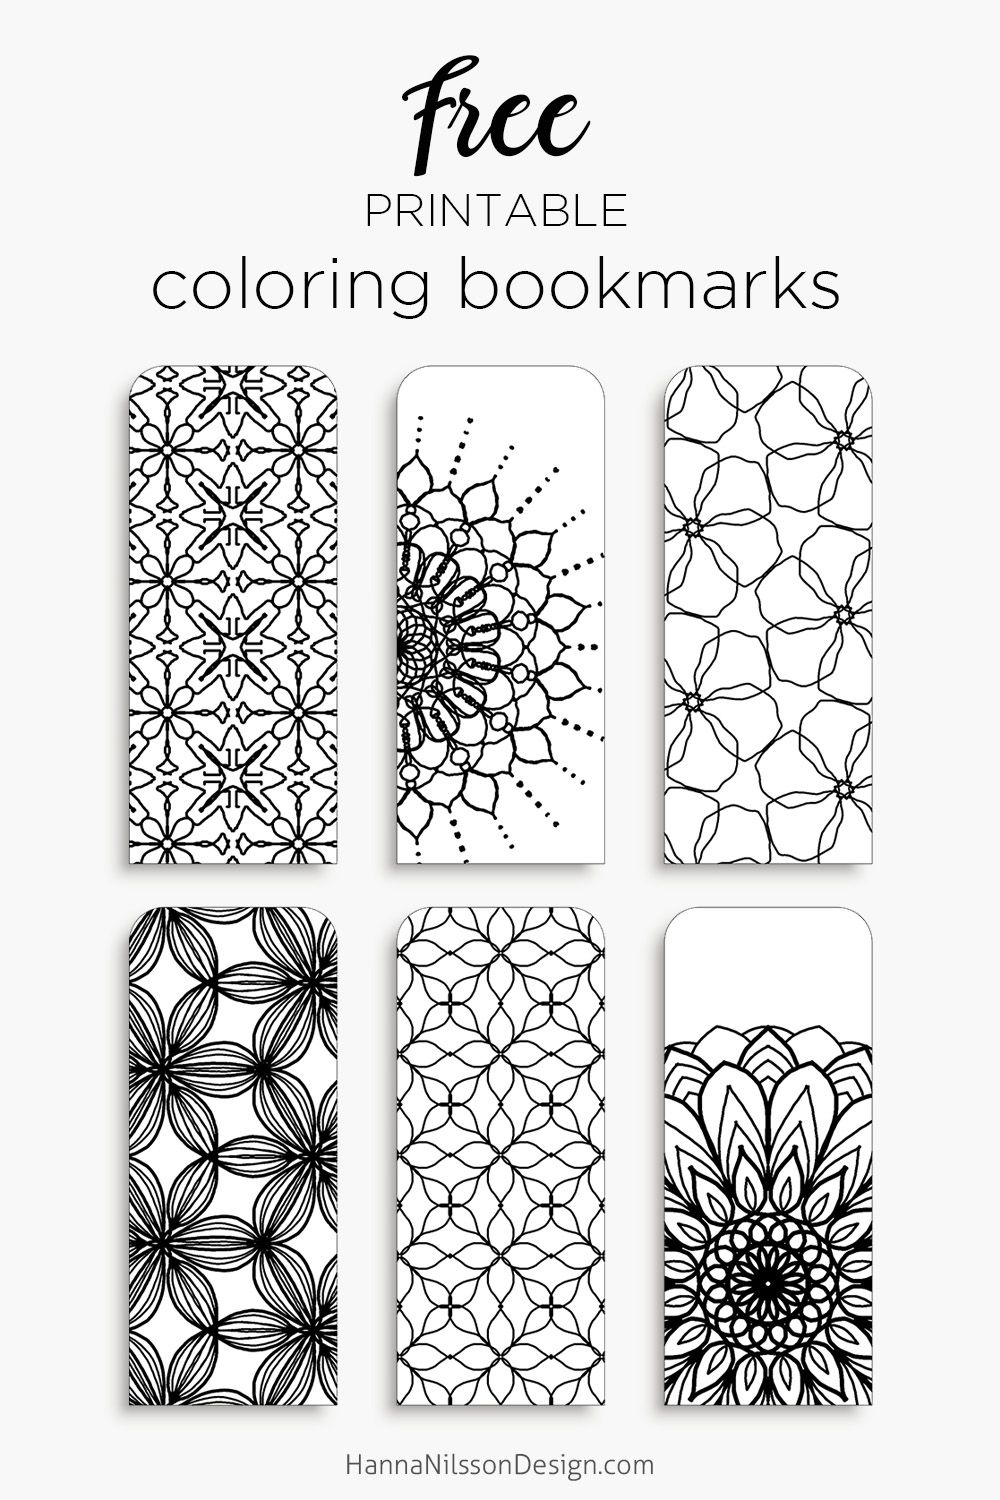 Coloring Bookmarks – Print, Color And Read | Hanna Nilsson Design - Free Printable Spring Bookmarks